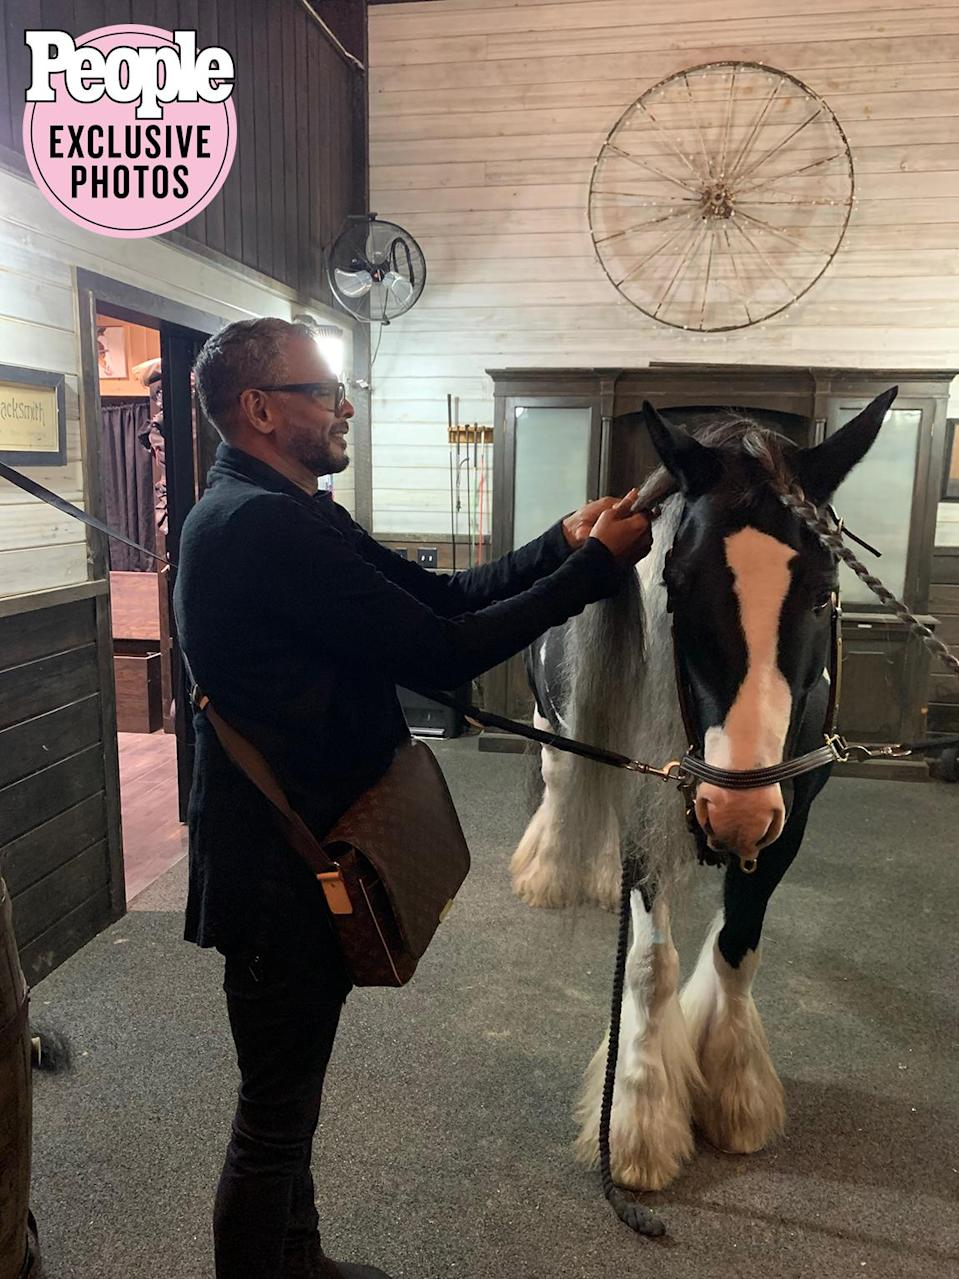 <p>I wasn't the only one who got glammed up that day. My hair stylist, Johnny Lavoy, took it upon himself to ensure everyone was properly hair styled by braiding my horse's hair!</p>